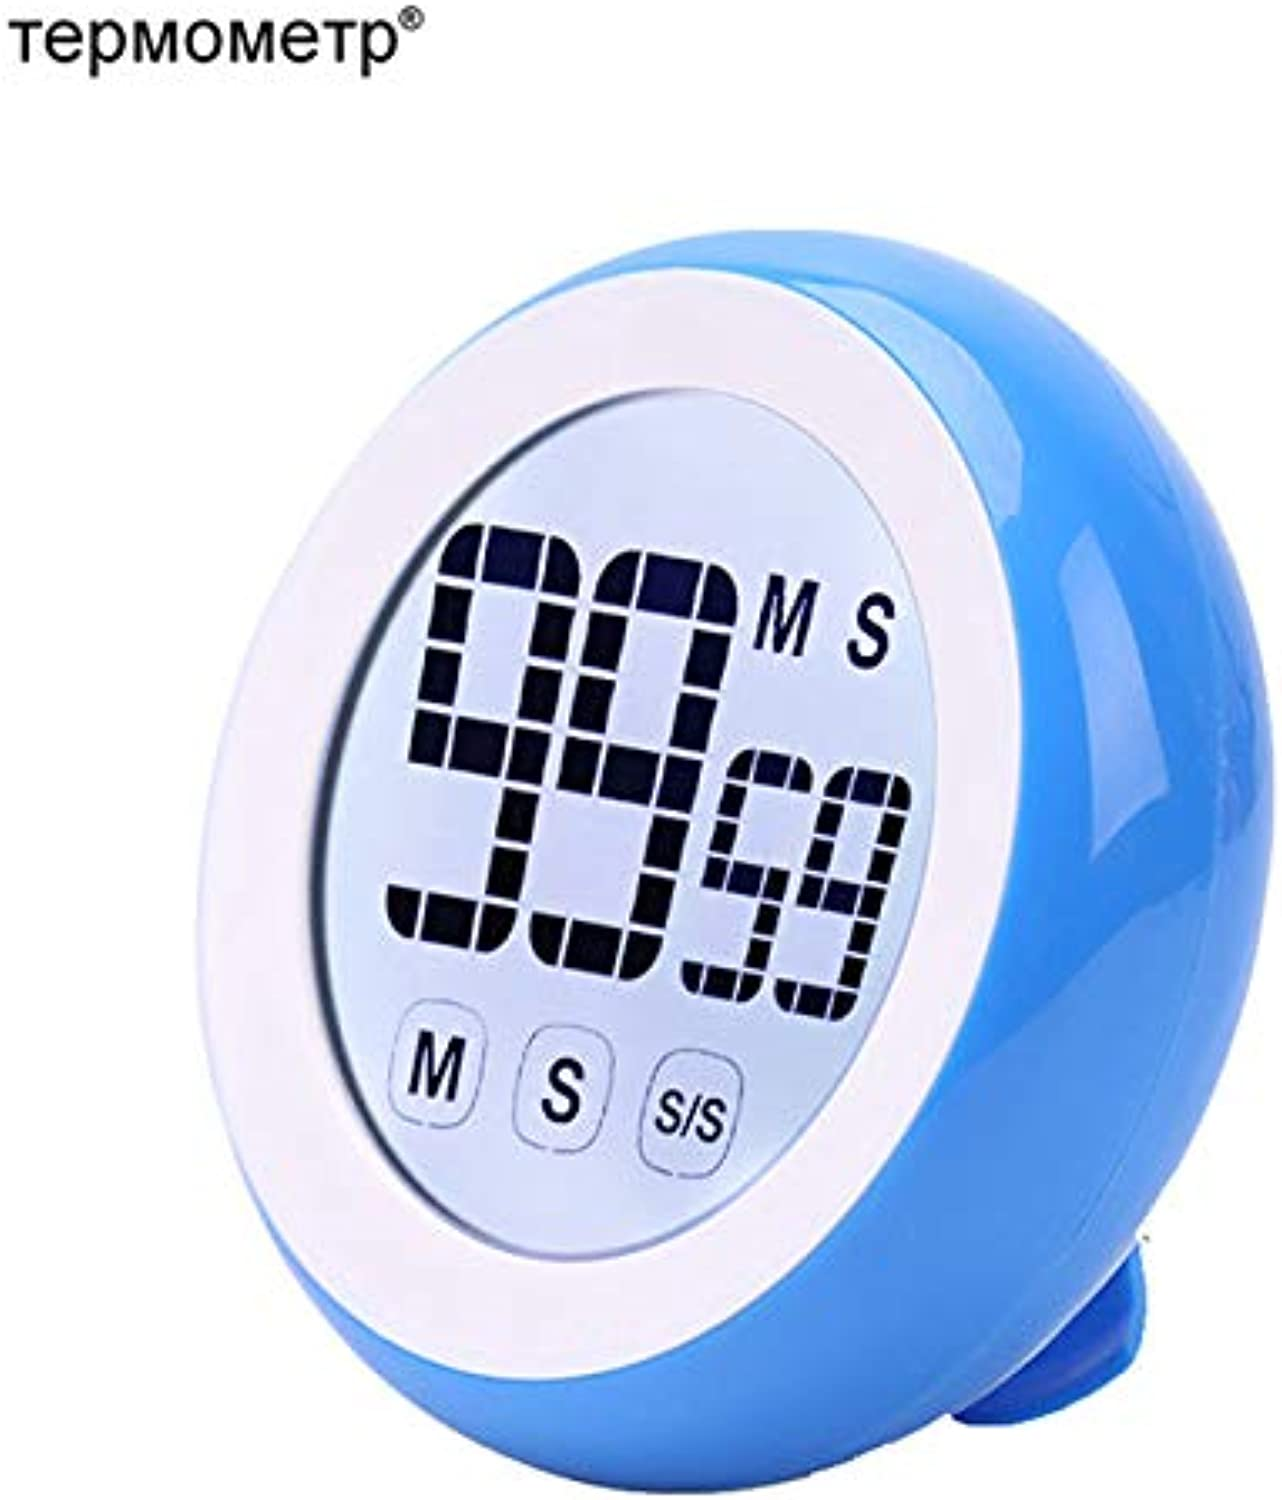 Gift Idea Touch Screen Digital Kitchen Cooking Timer Countdown Countup Magnetic LCD Timer Alarm Reminder colorful   bluee